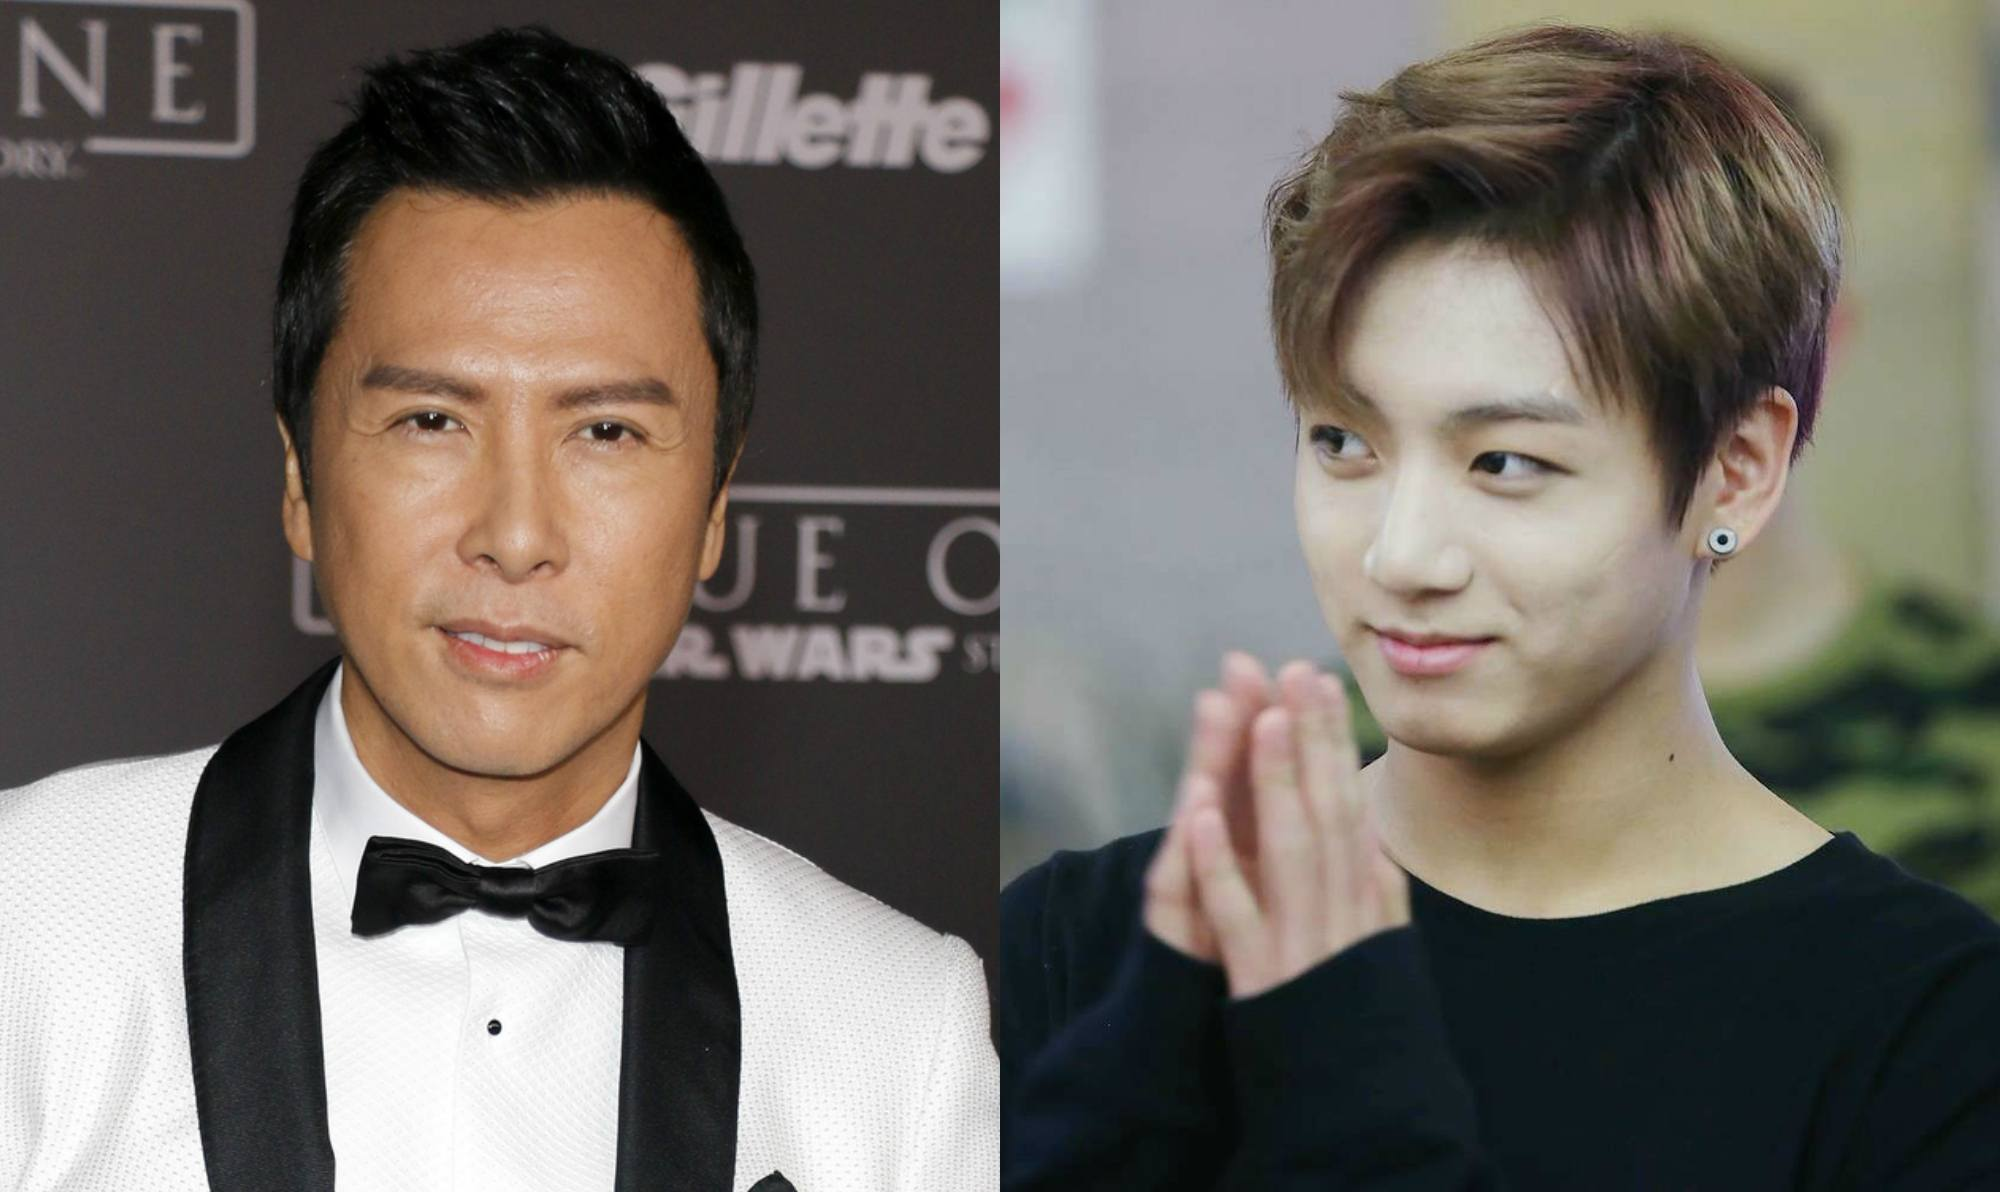 Donnie Yen Took 100 Photos To Get His Daughter A Backstage Photo With BTS